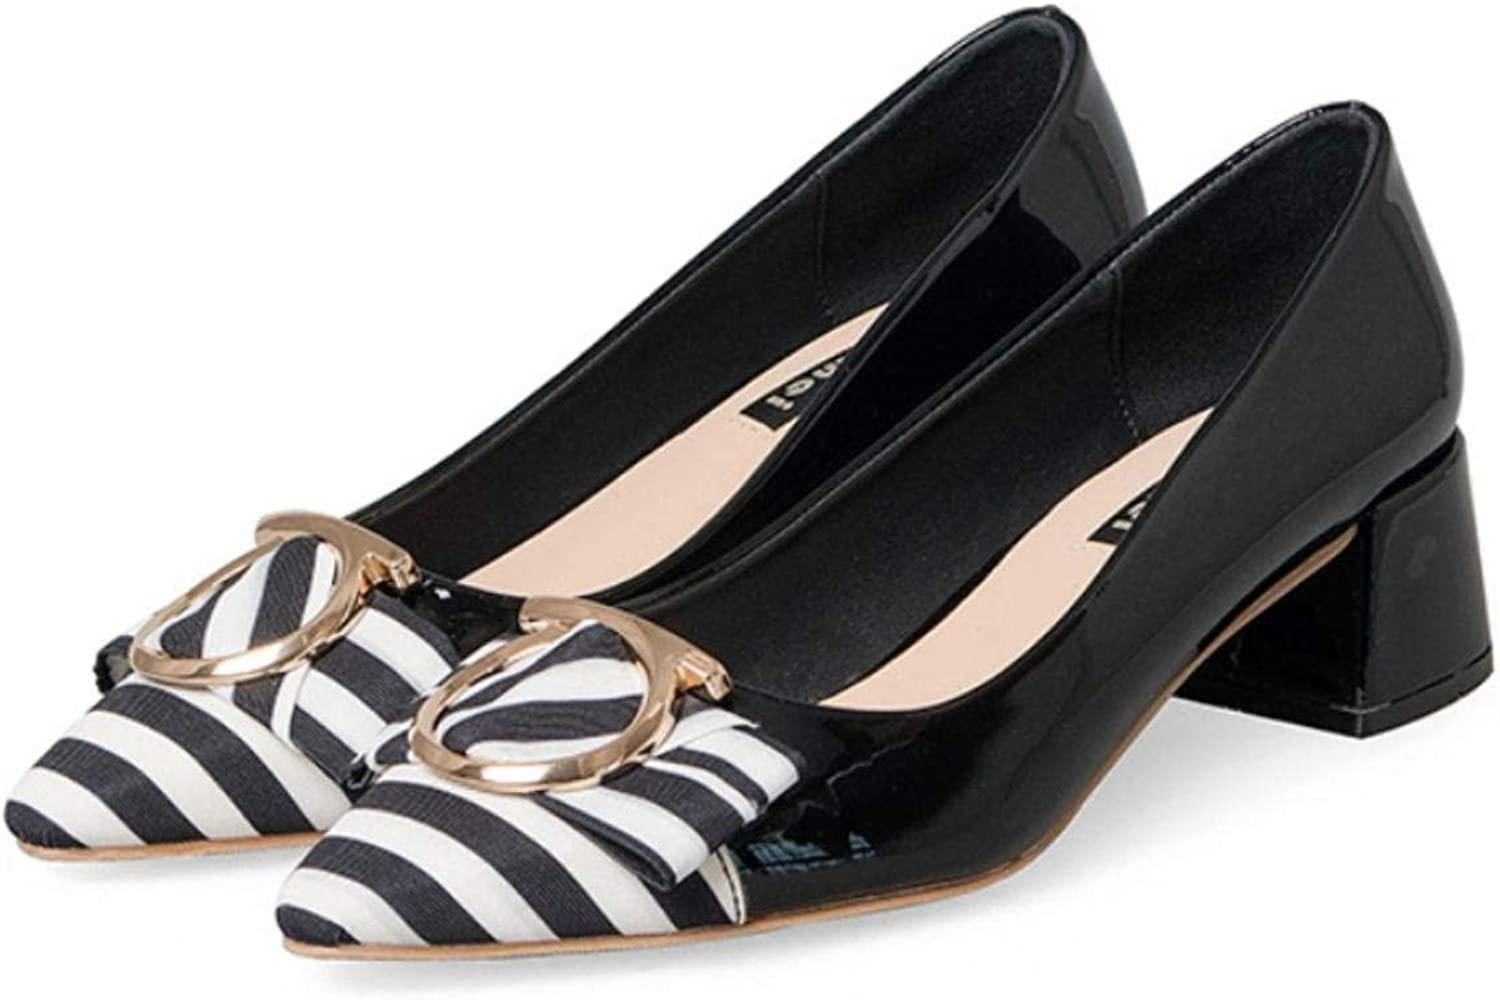 So8ooa Lady shoes Women's Court shoes Striped Patent Leather shoes Pointed Thick with a shoes High 4.13cm Black Pink Quality Elegant for Women